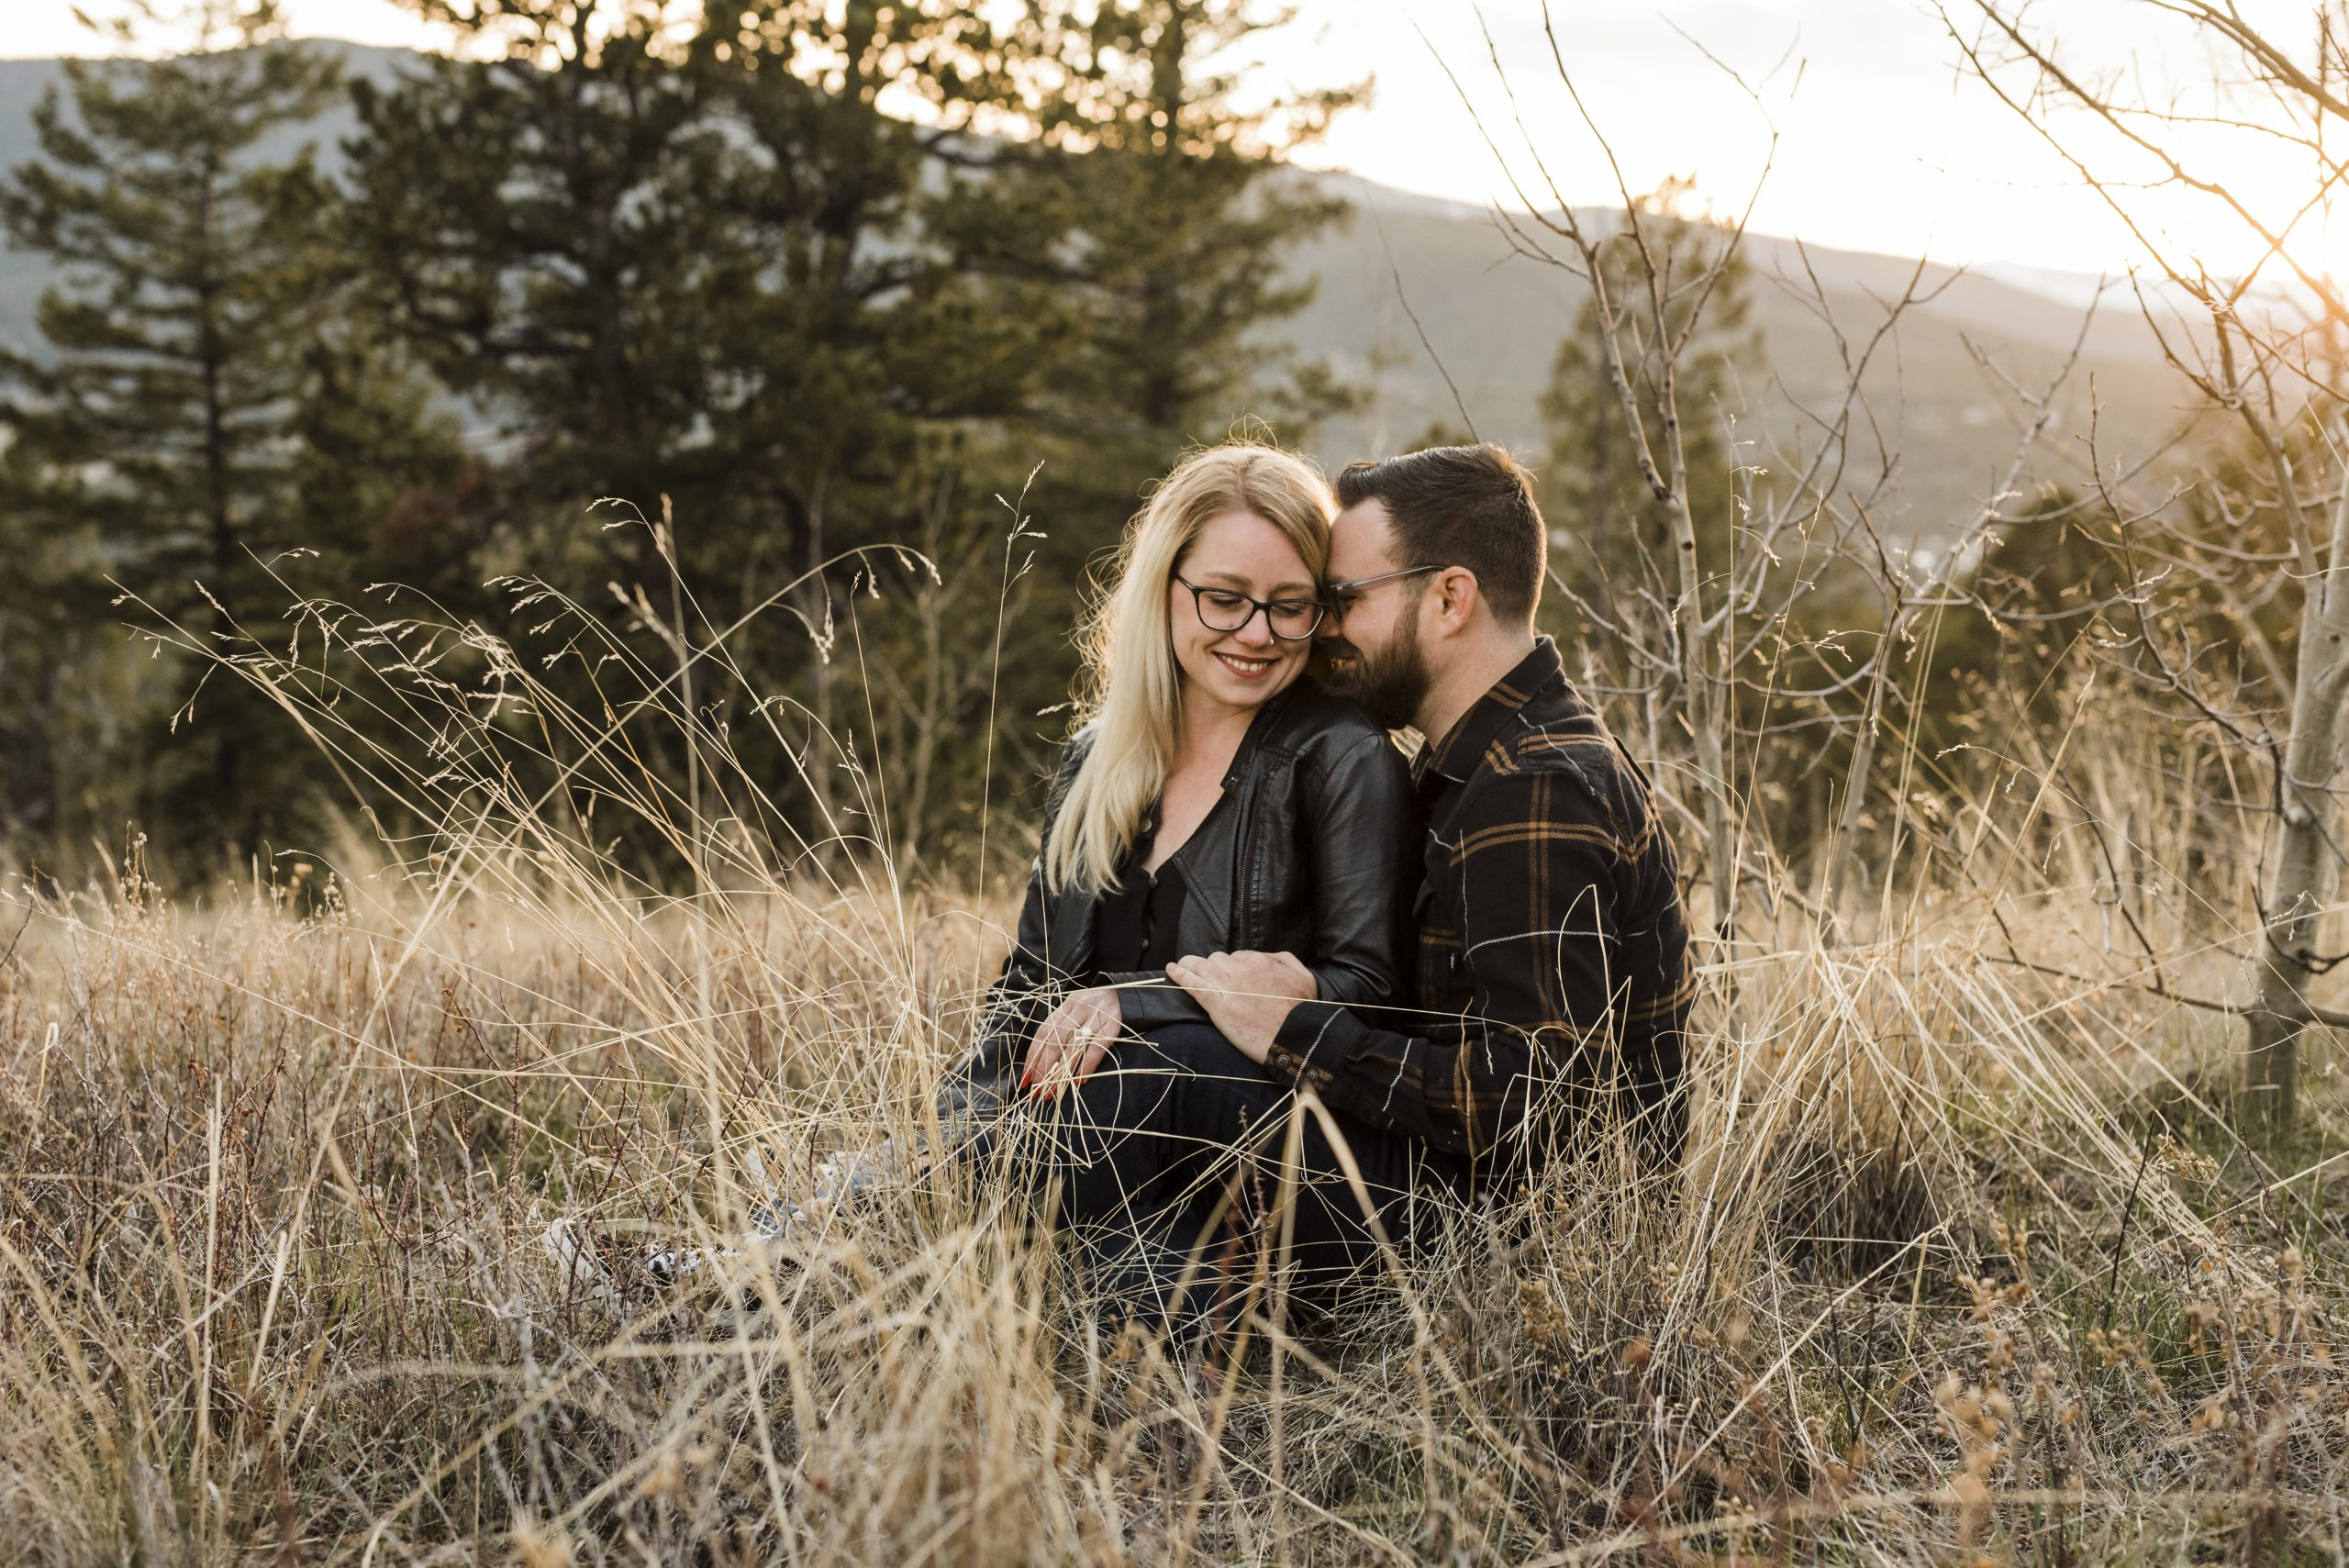 Golden Gate Canyon State Park Engagements